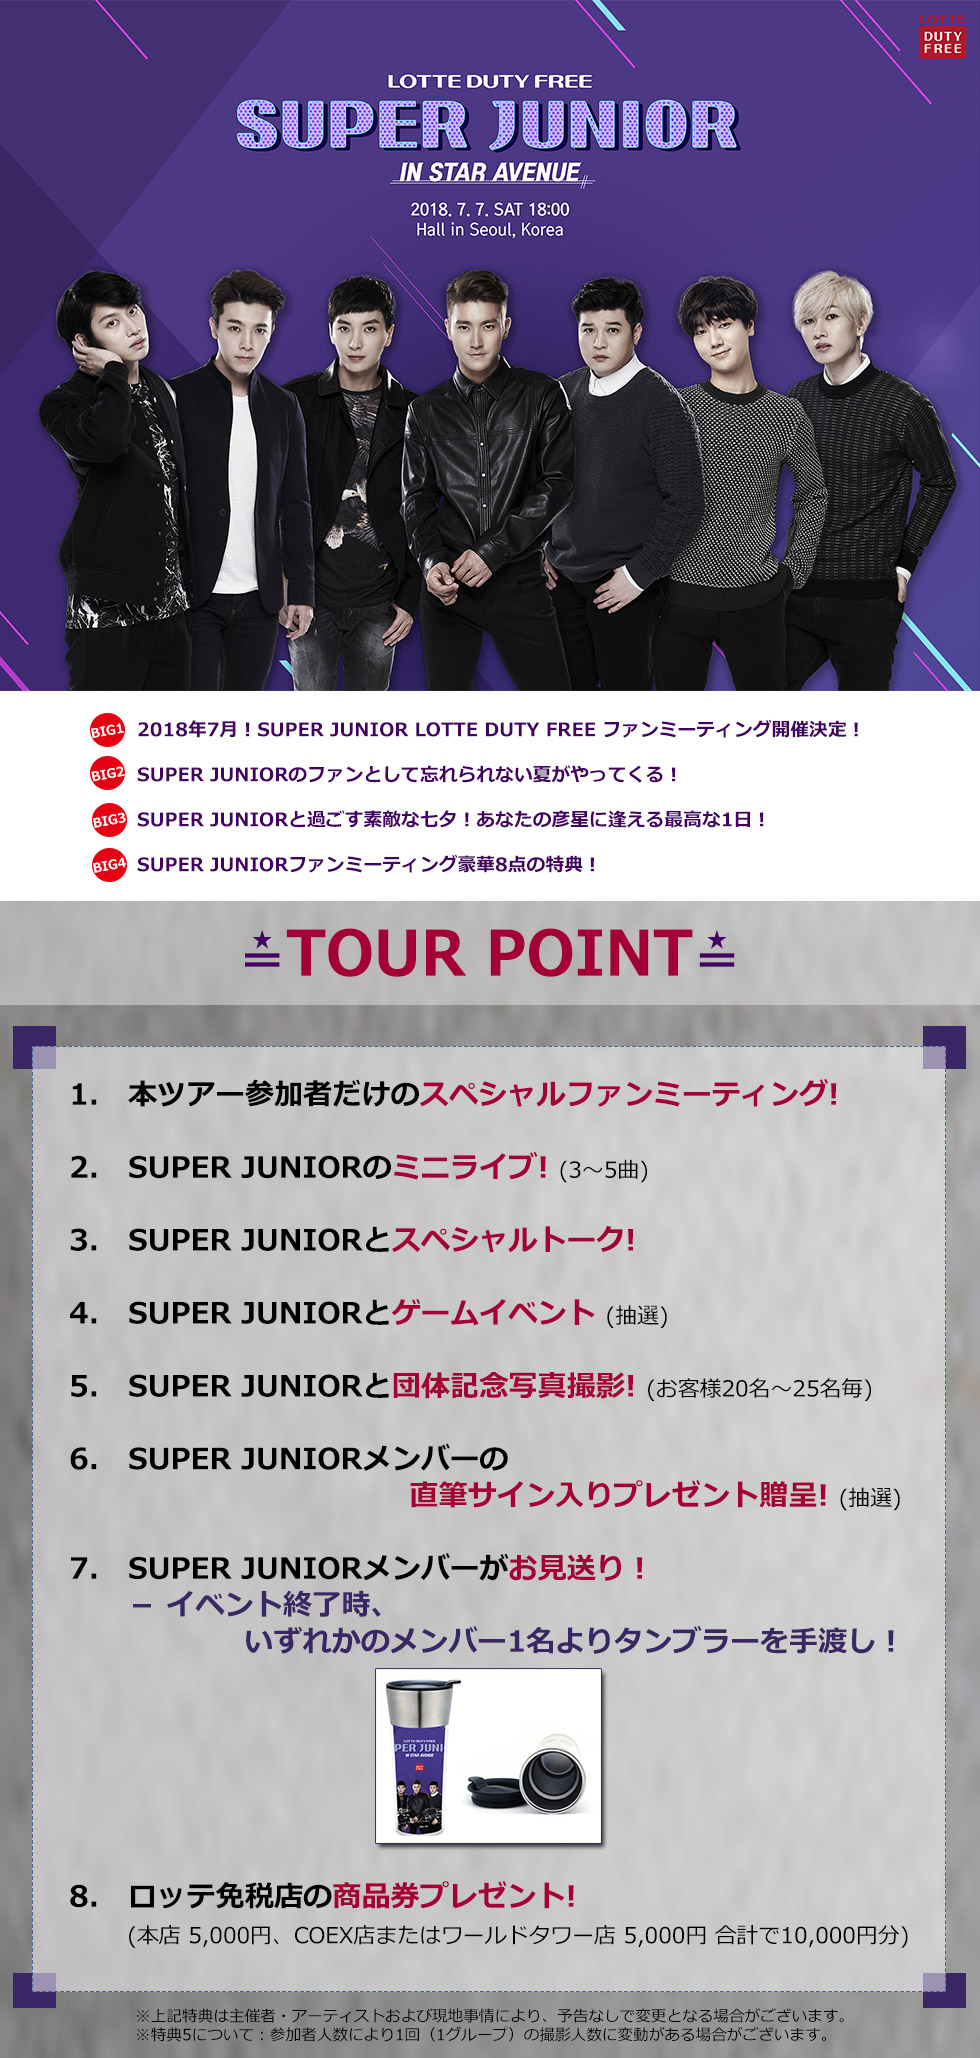 2018 LOTTE DUTY FREE SUPER JUNIOR  IN STAR AVENUE